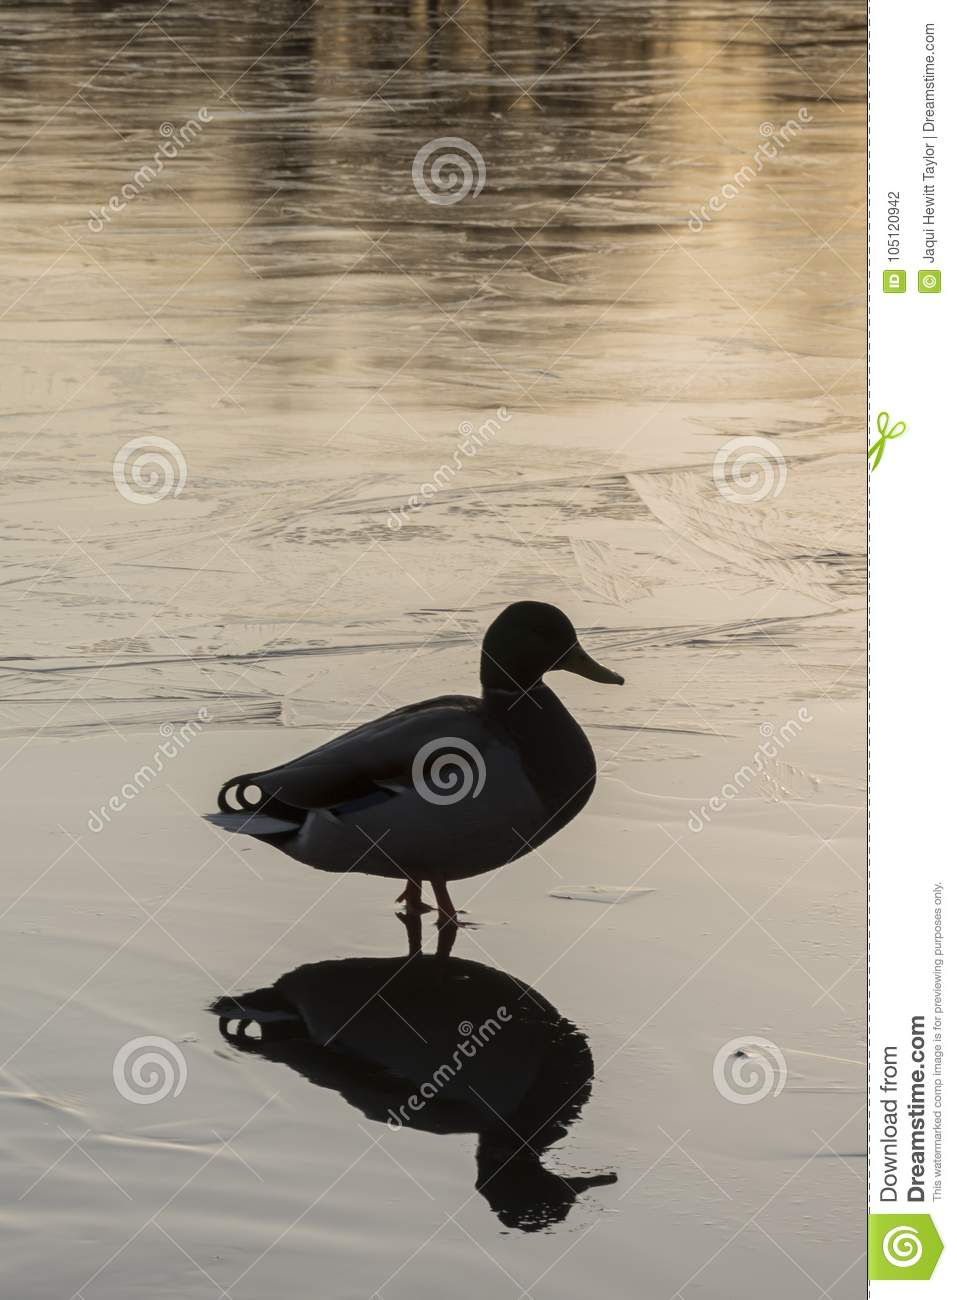 The silhouette of a mallard duck standing on the ice : Southampton Common